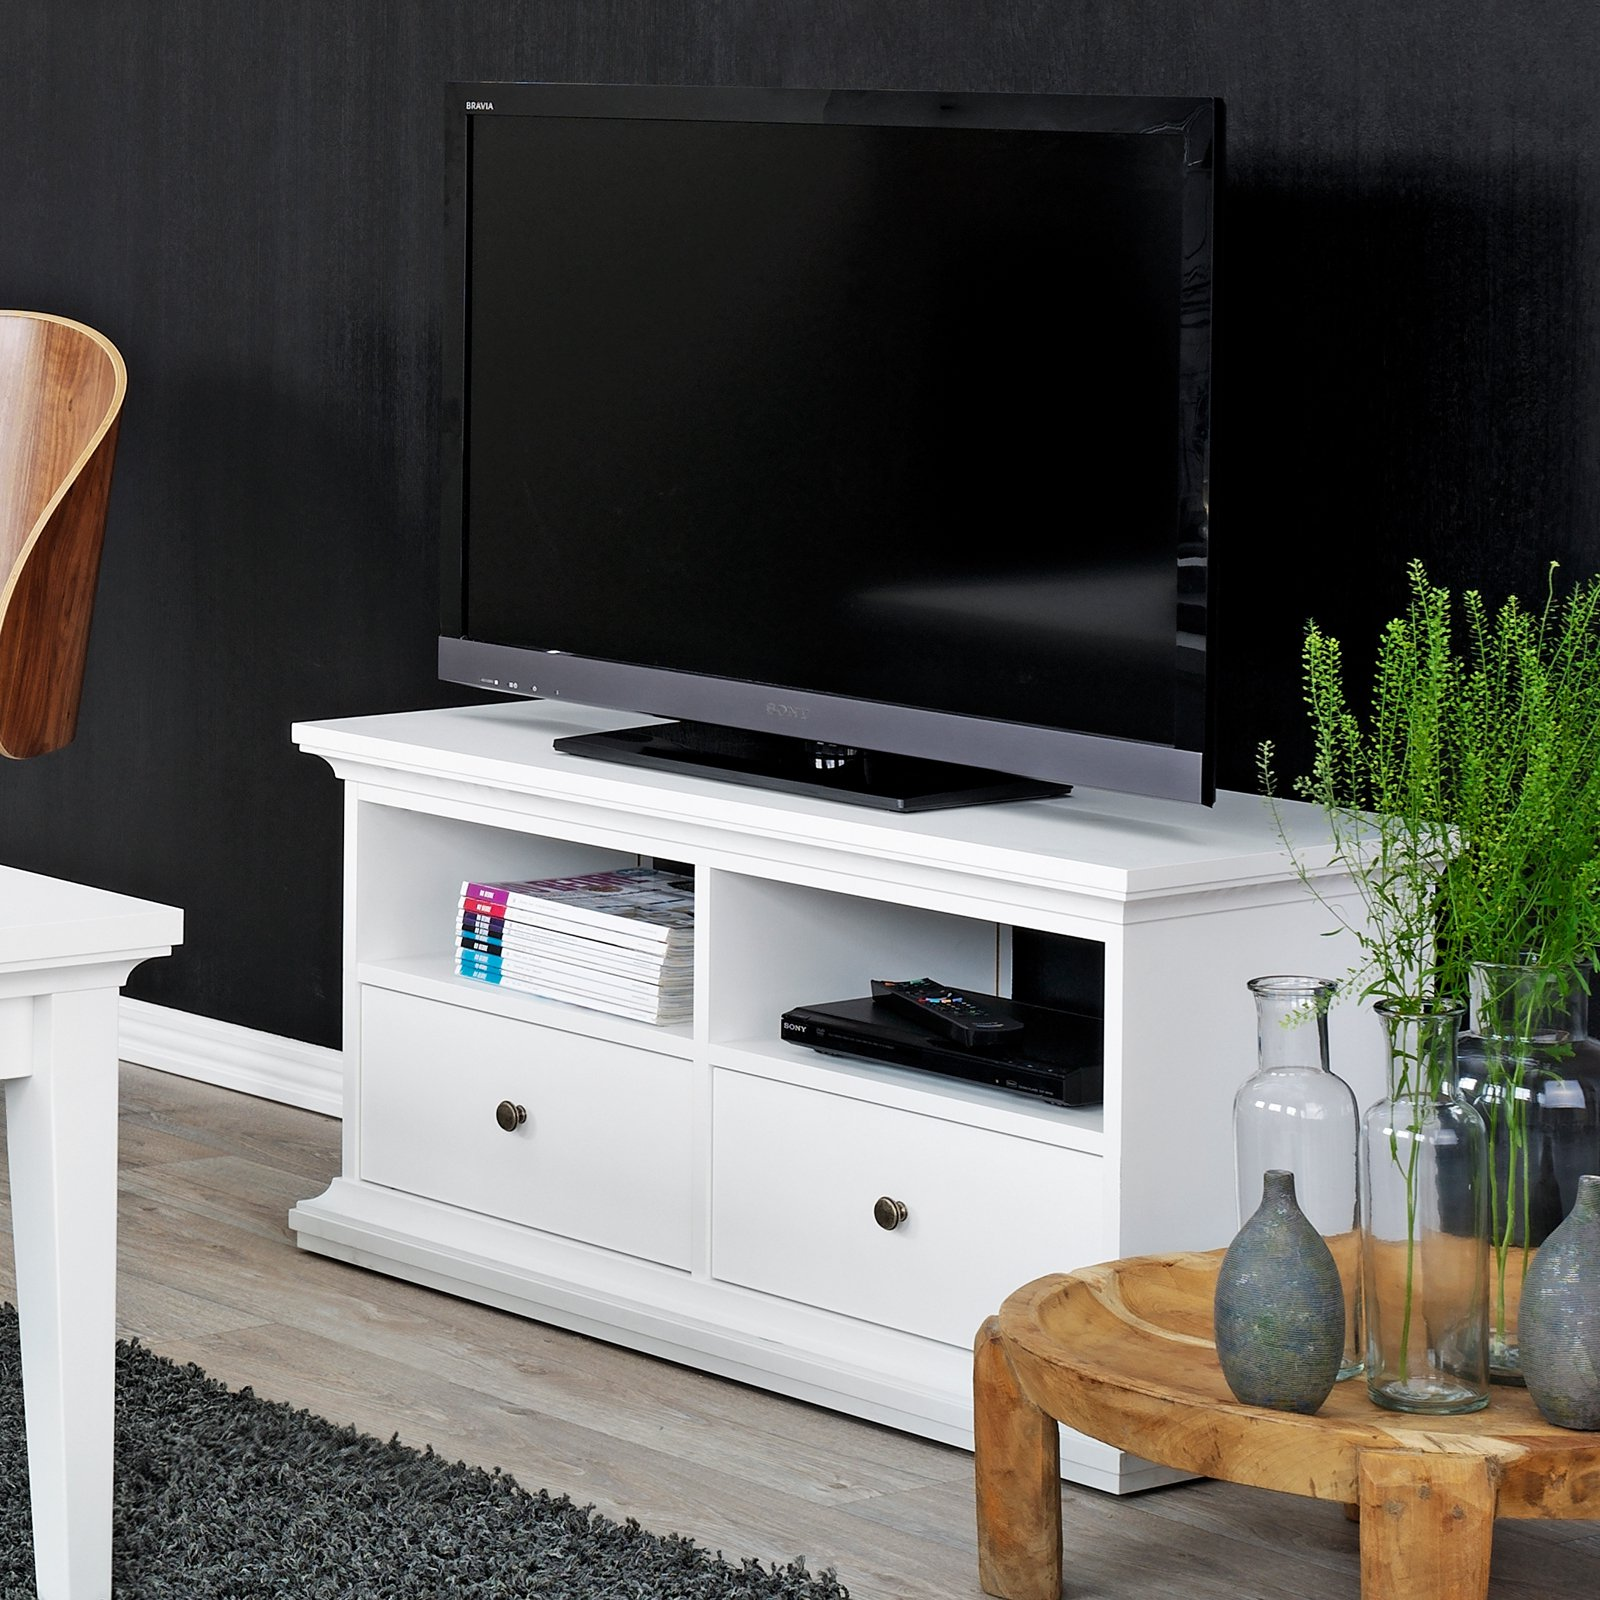 Tvilum Sonoma Collection 41 in. TV Stand - White